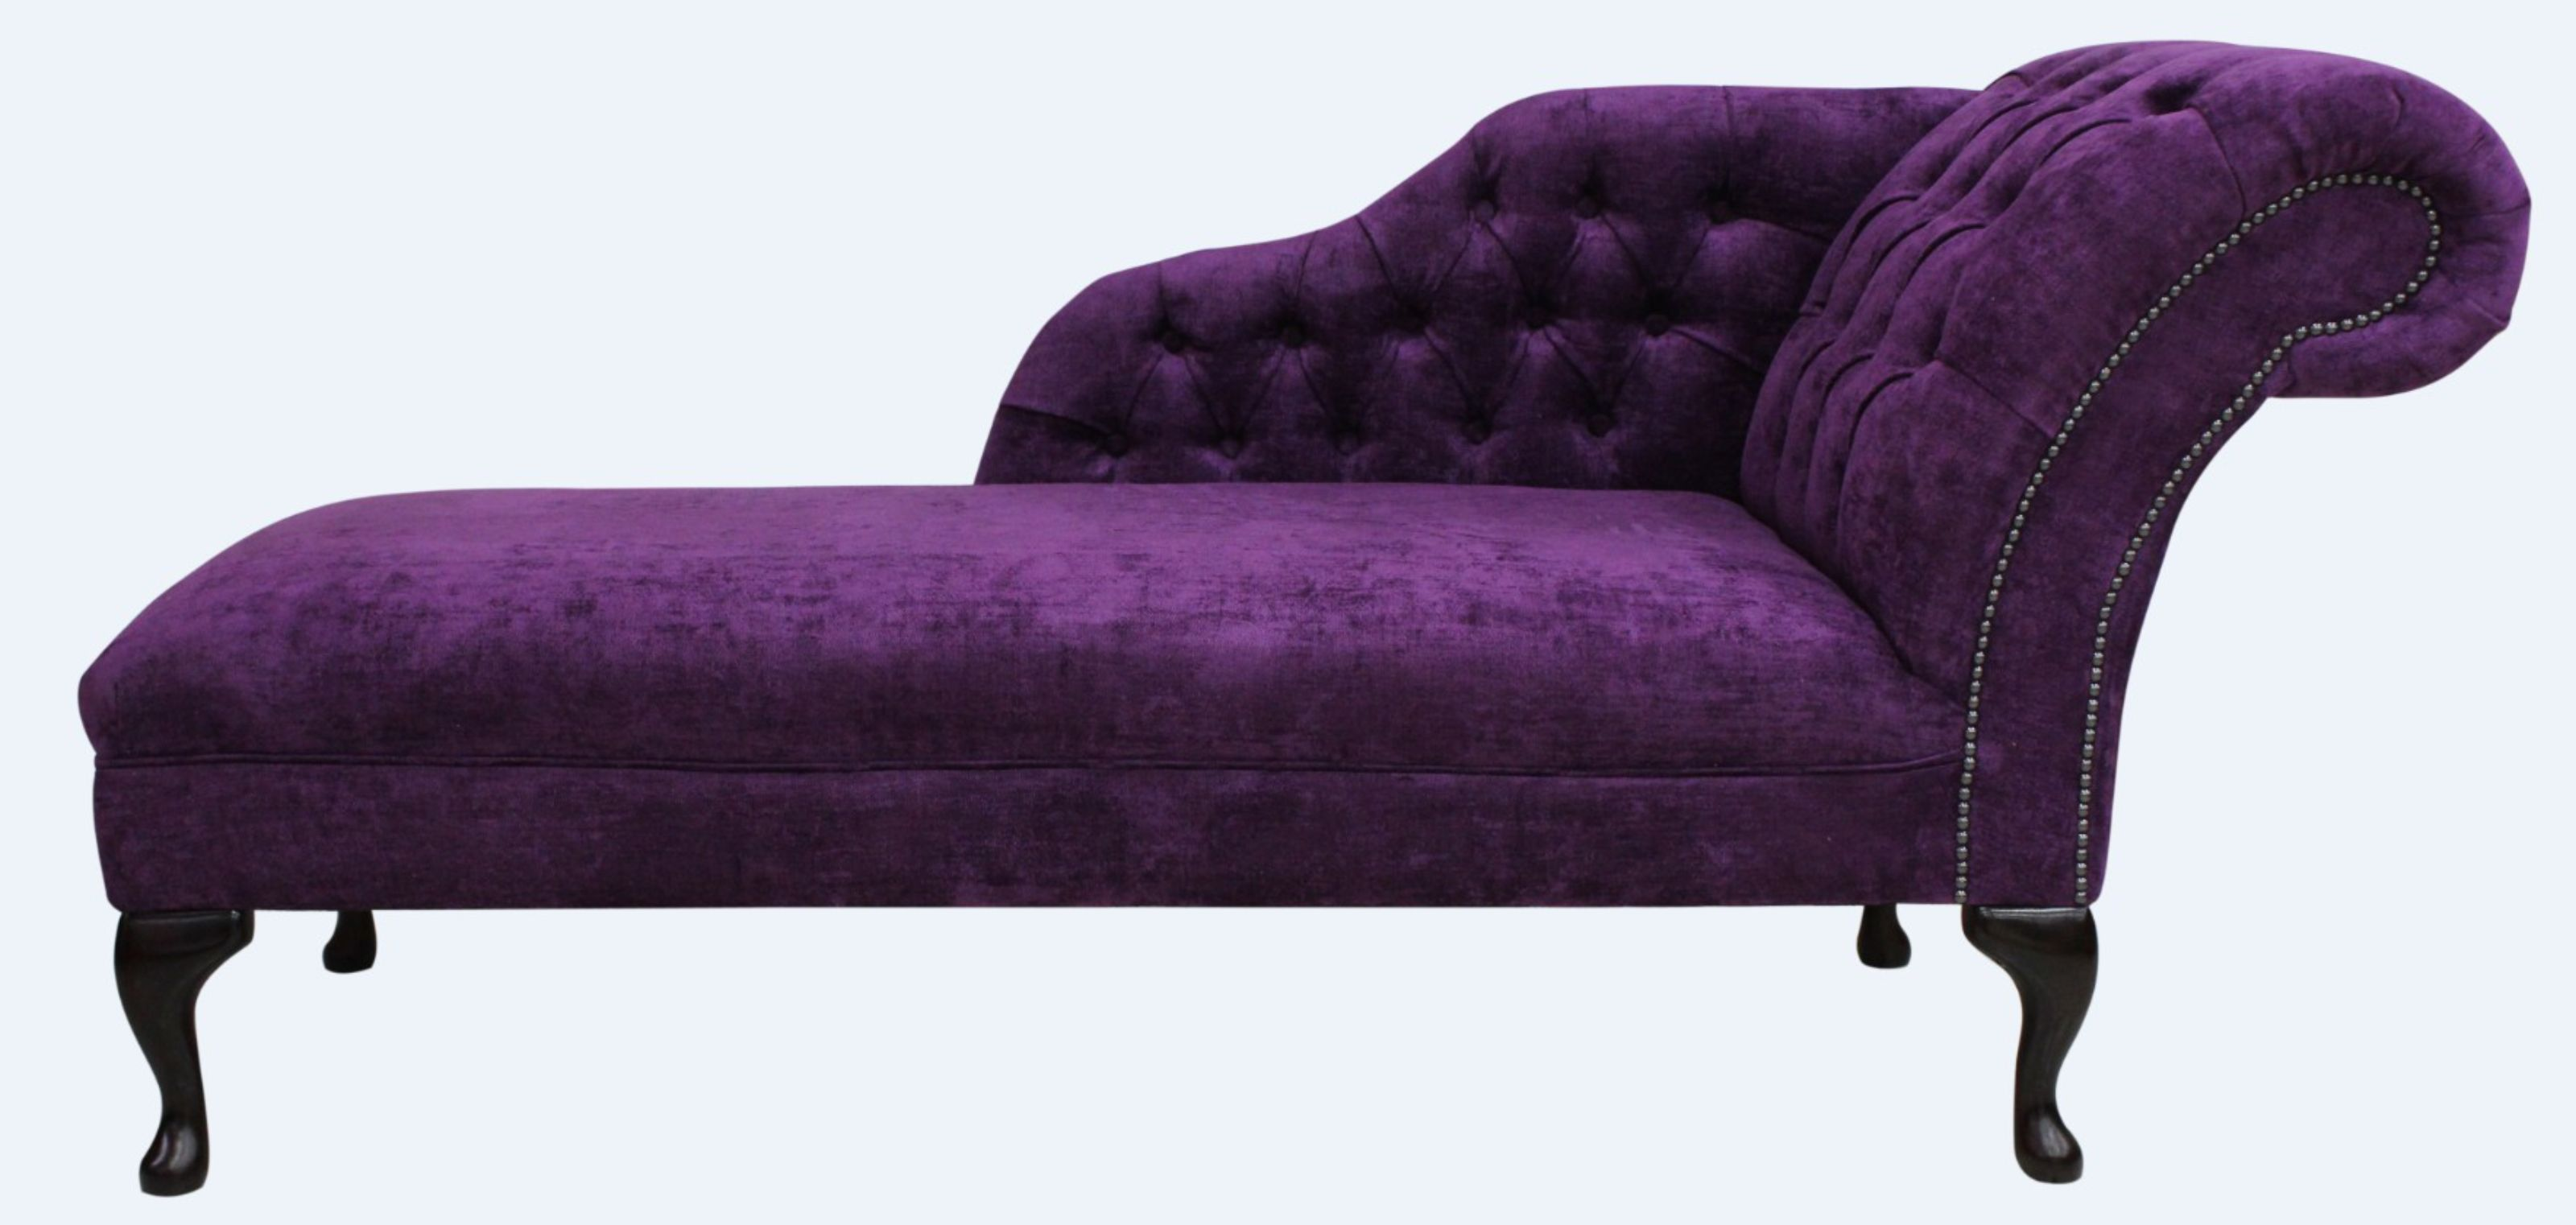 - Chesterfield Chaise Lounge Day Bed Velluto Amethyst Purple Fabric